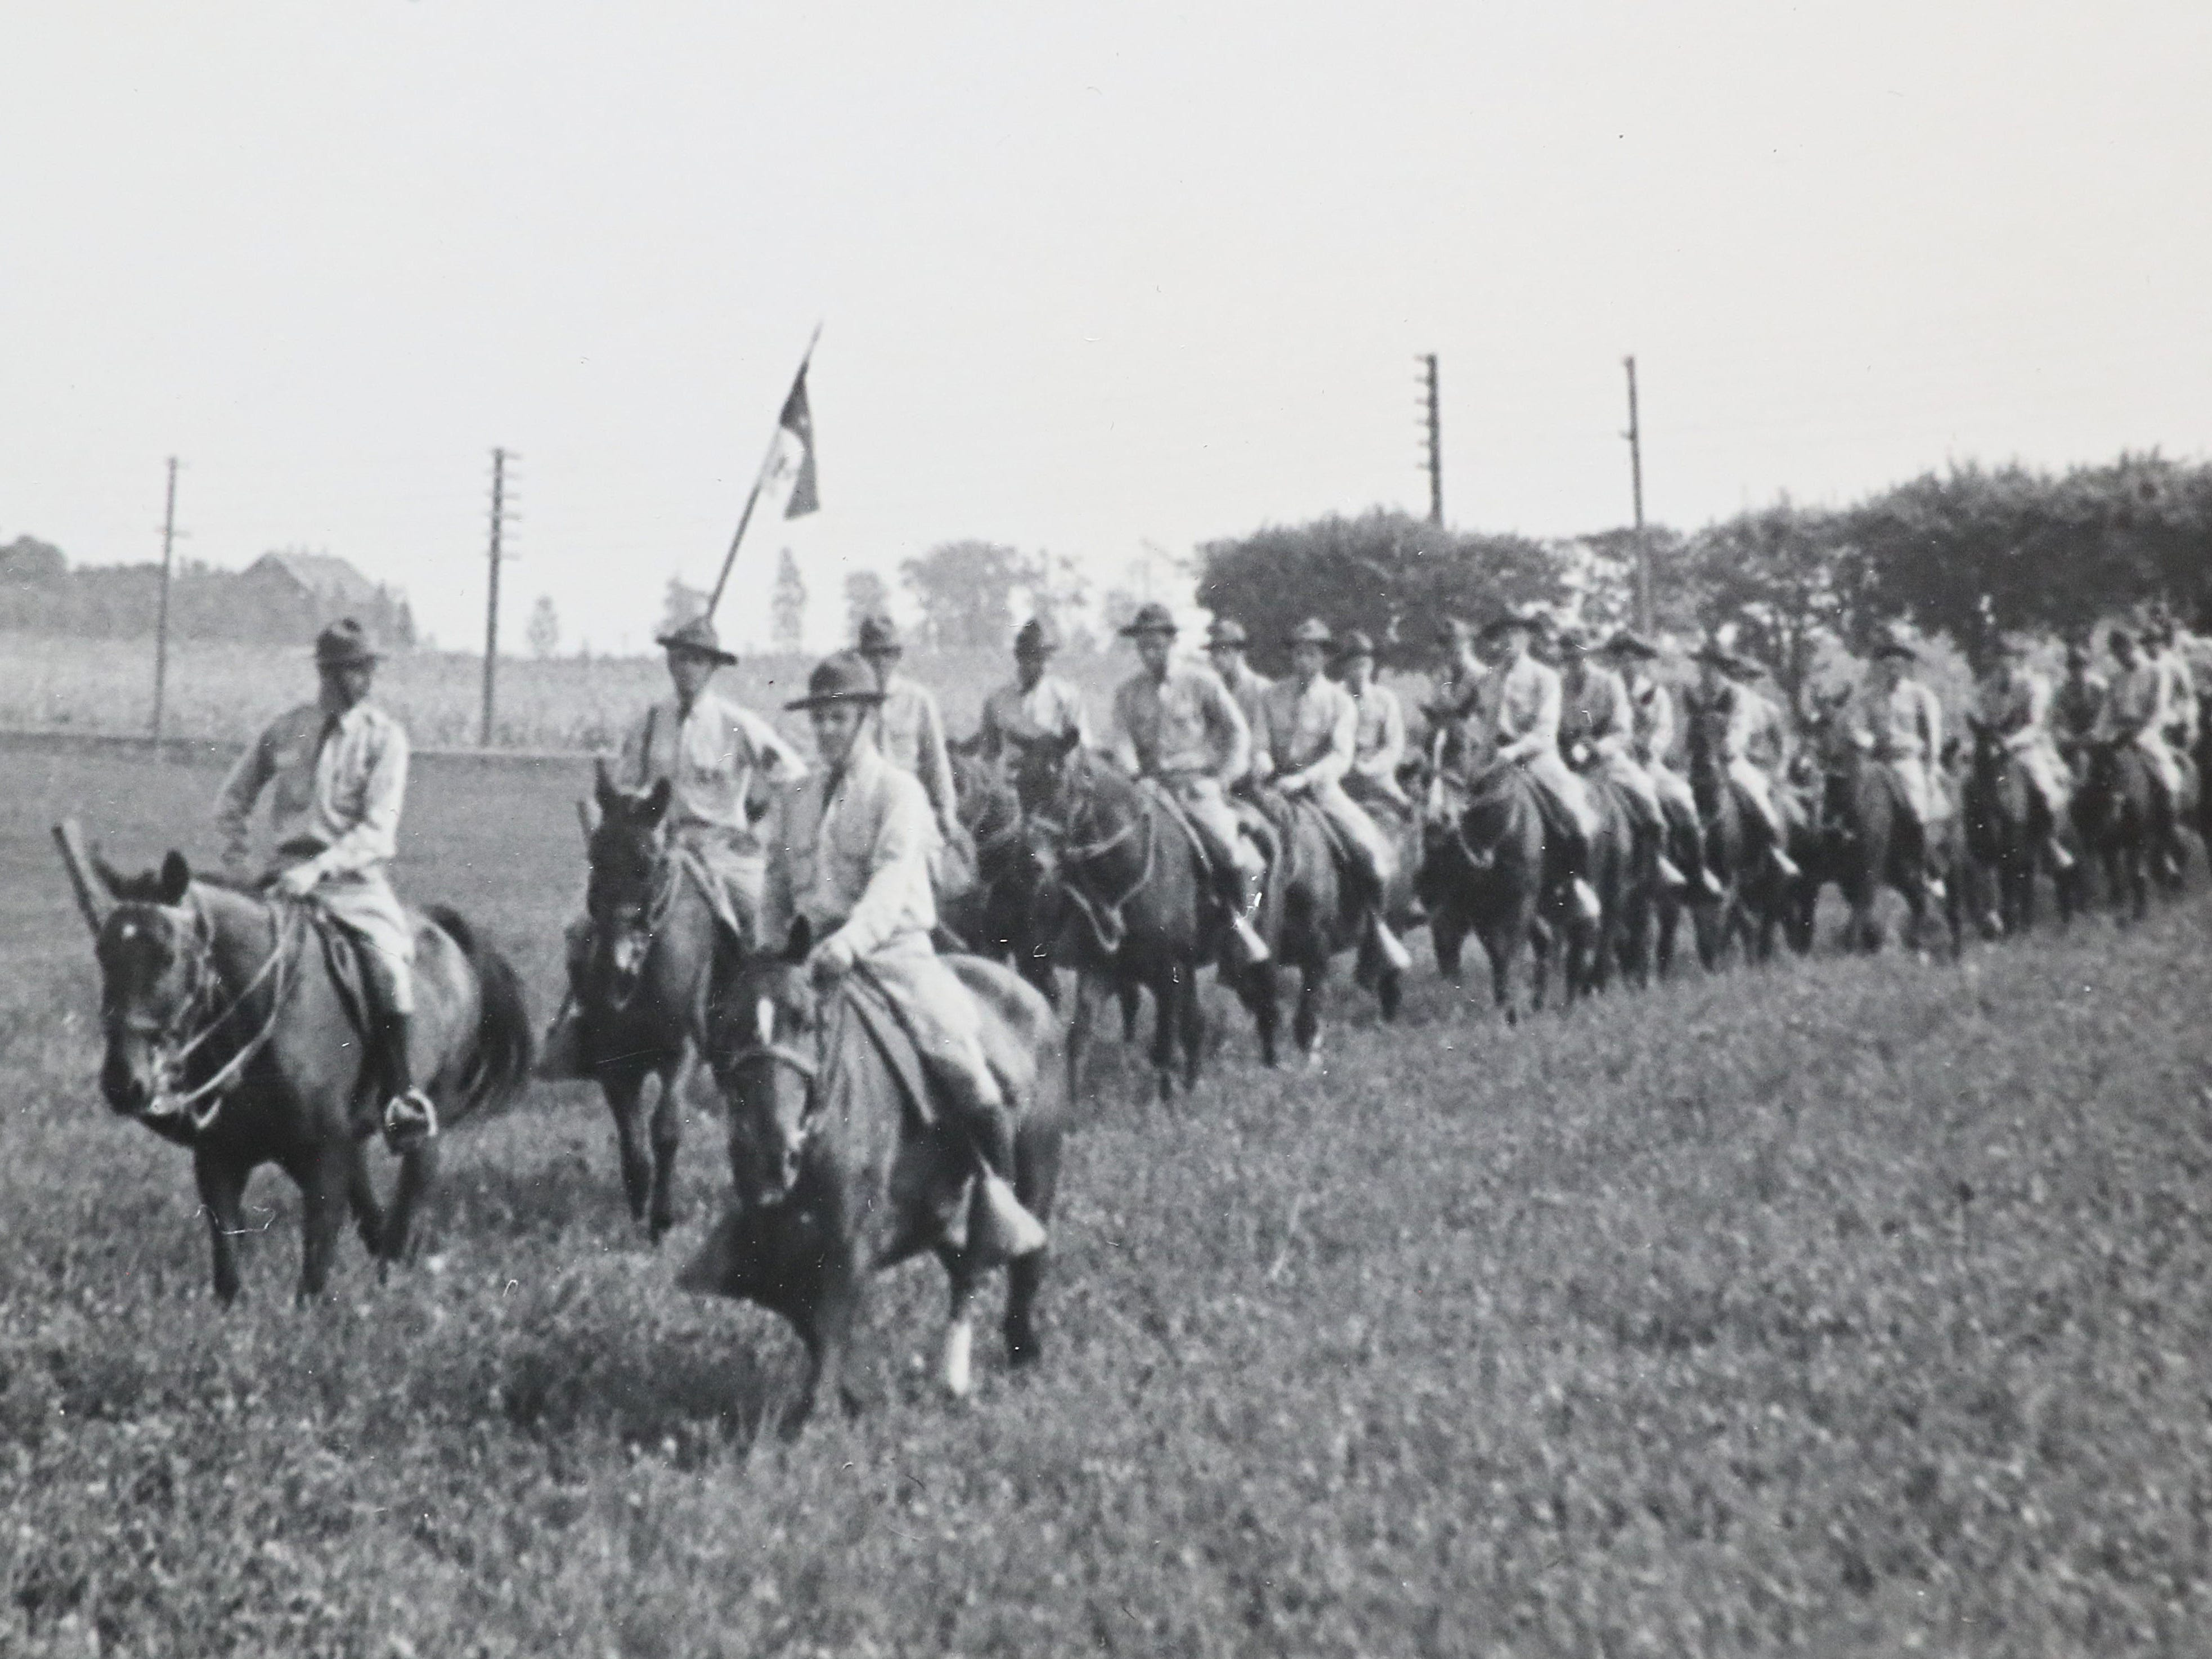 A photo of the 105th Cavalry taken by Jake Skocir.